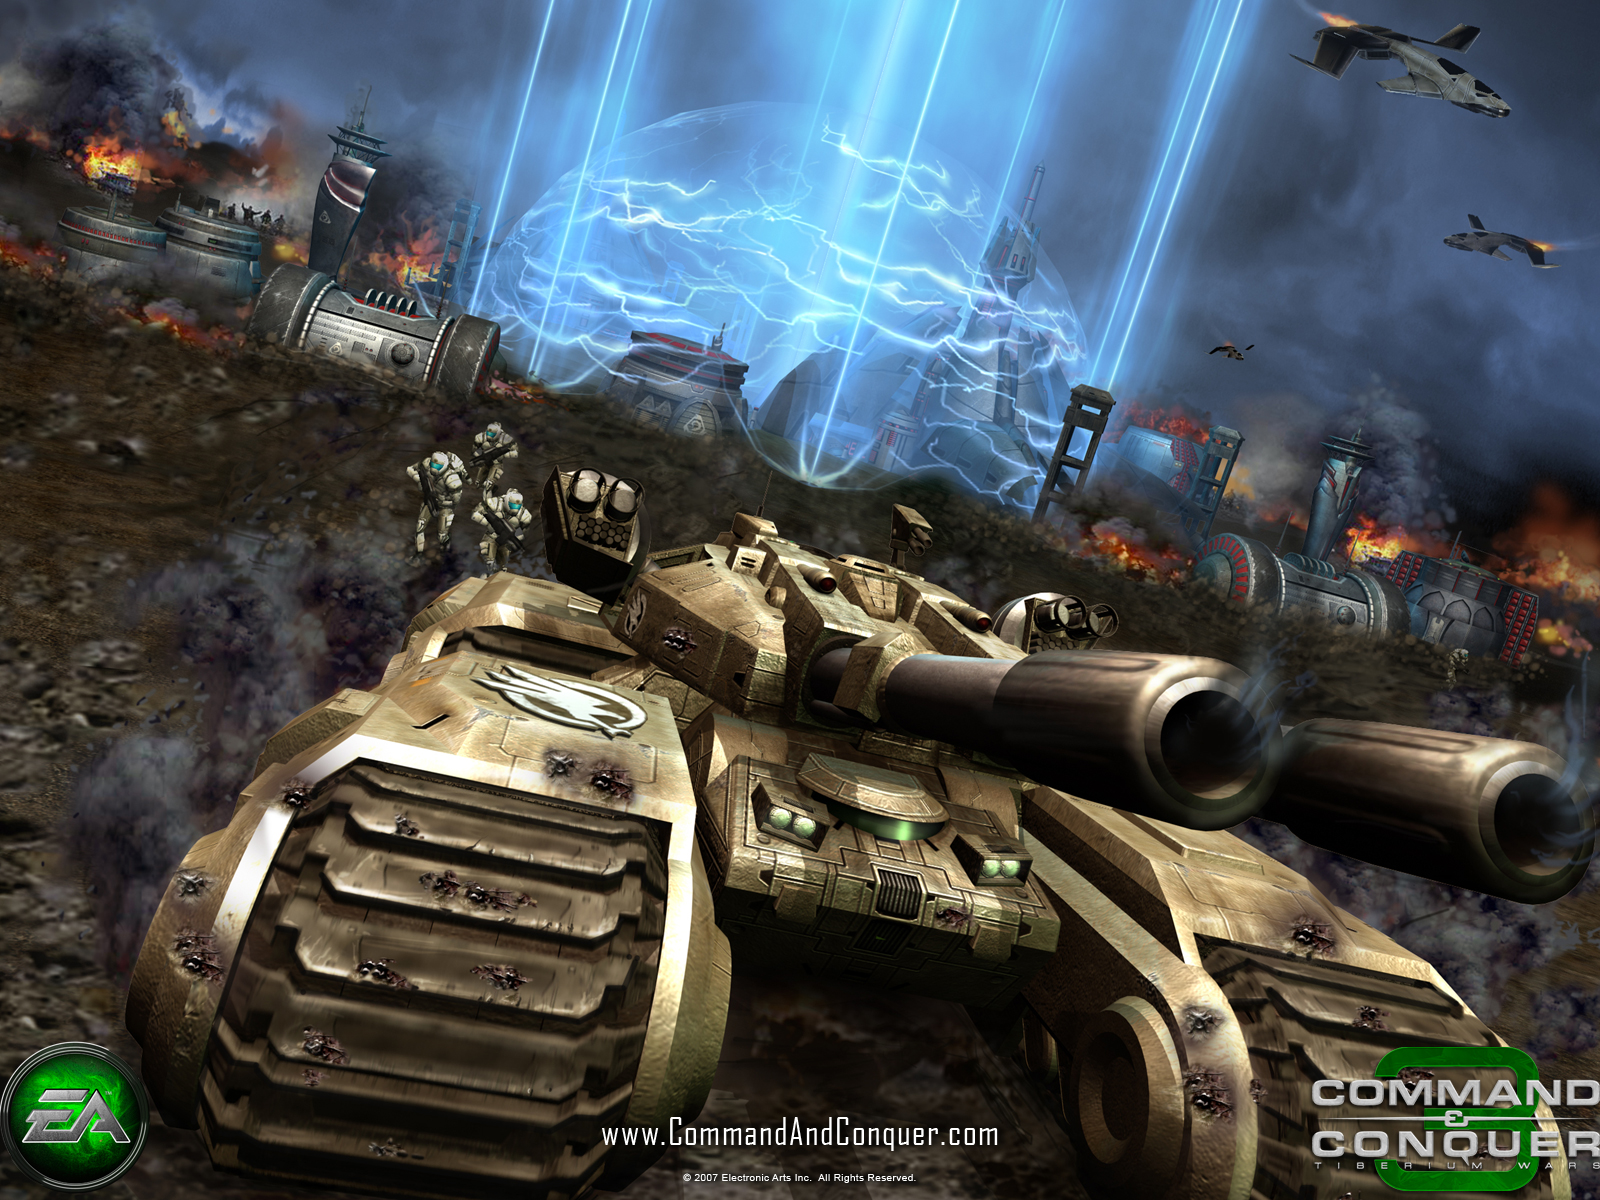 Command and Conquer-3 Tiberium Wars 21.jpg - Command & Conquer 3: Tiberium Wars